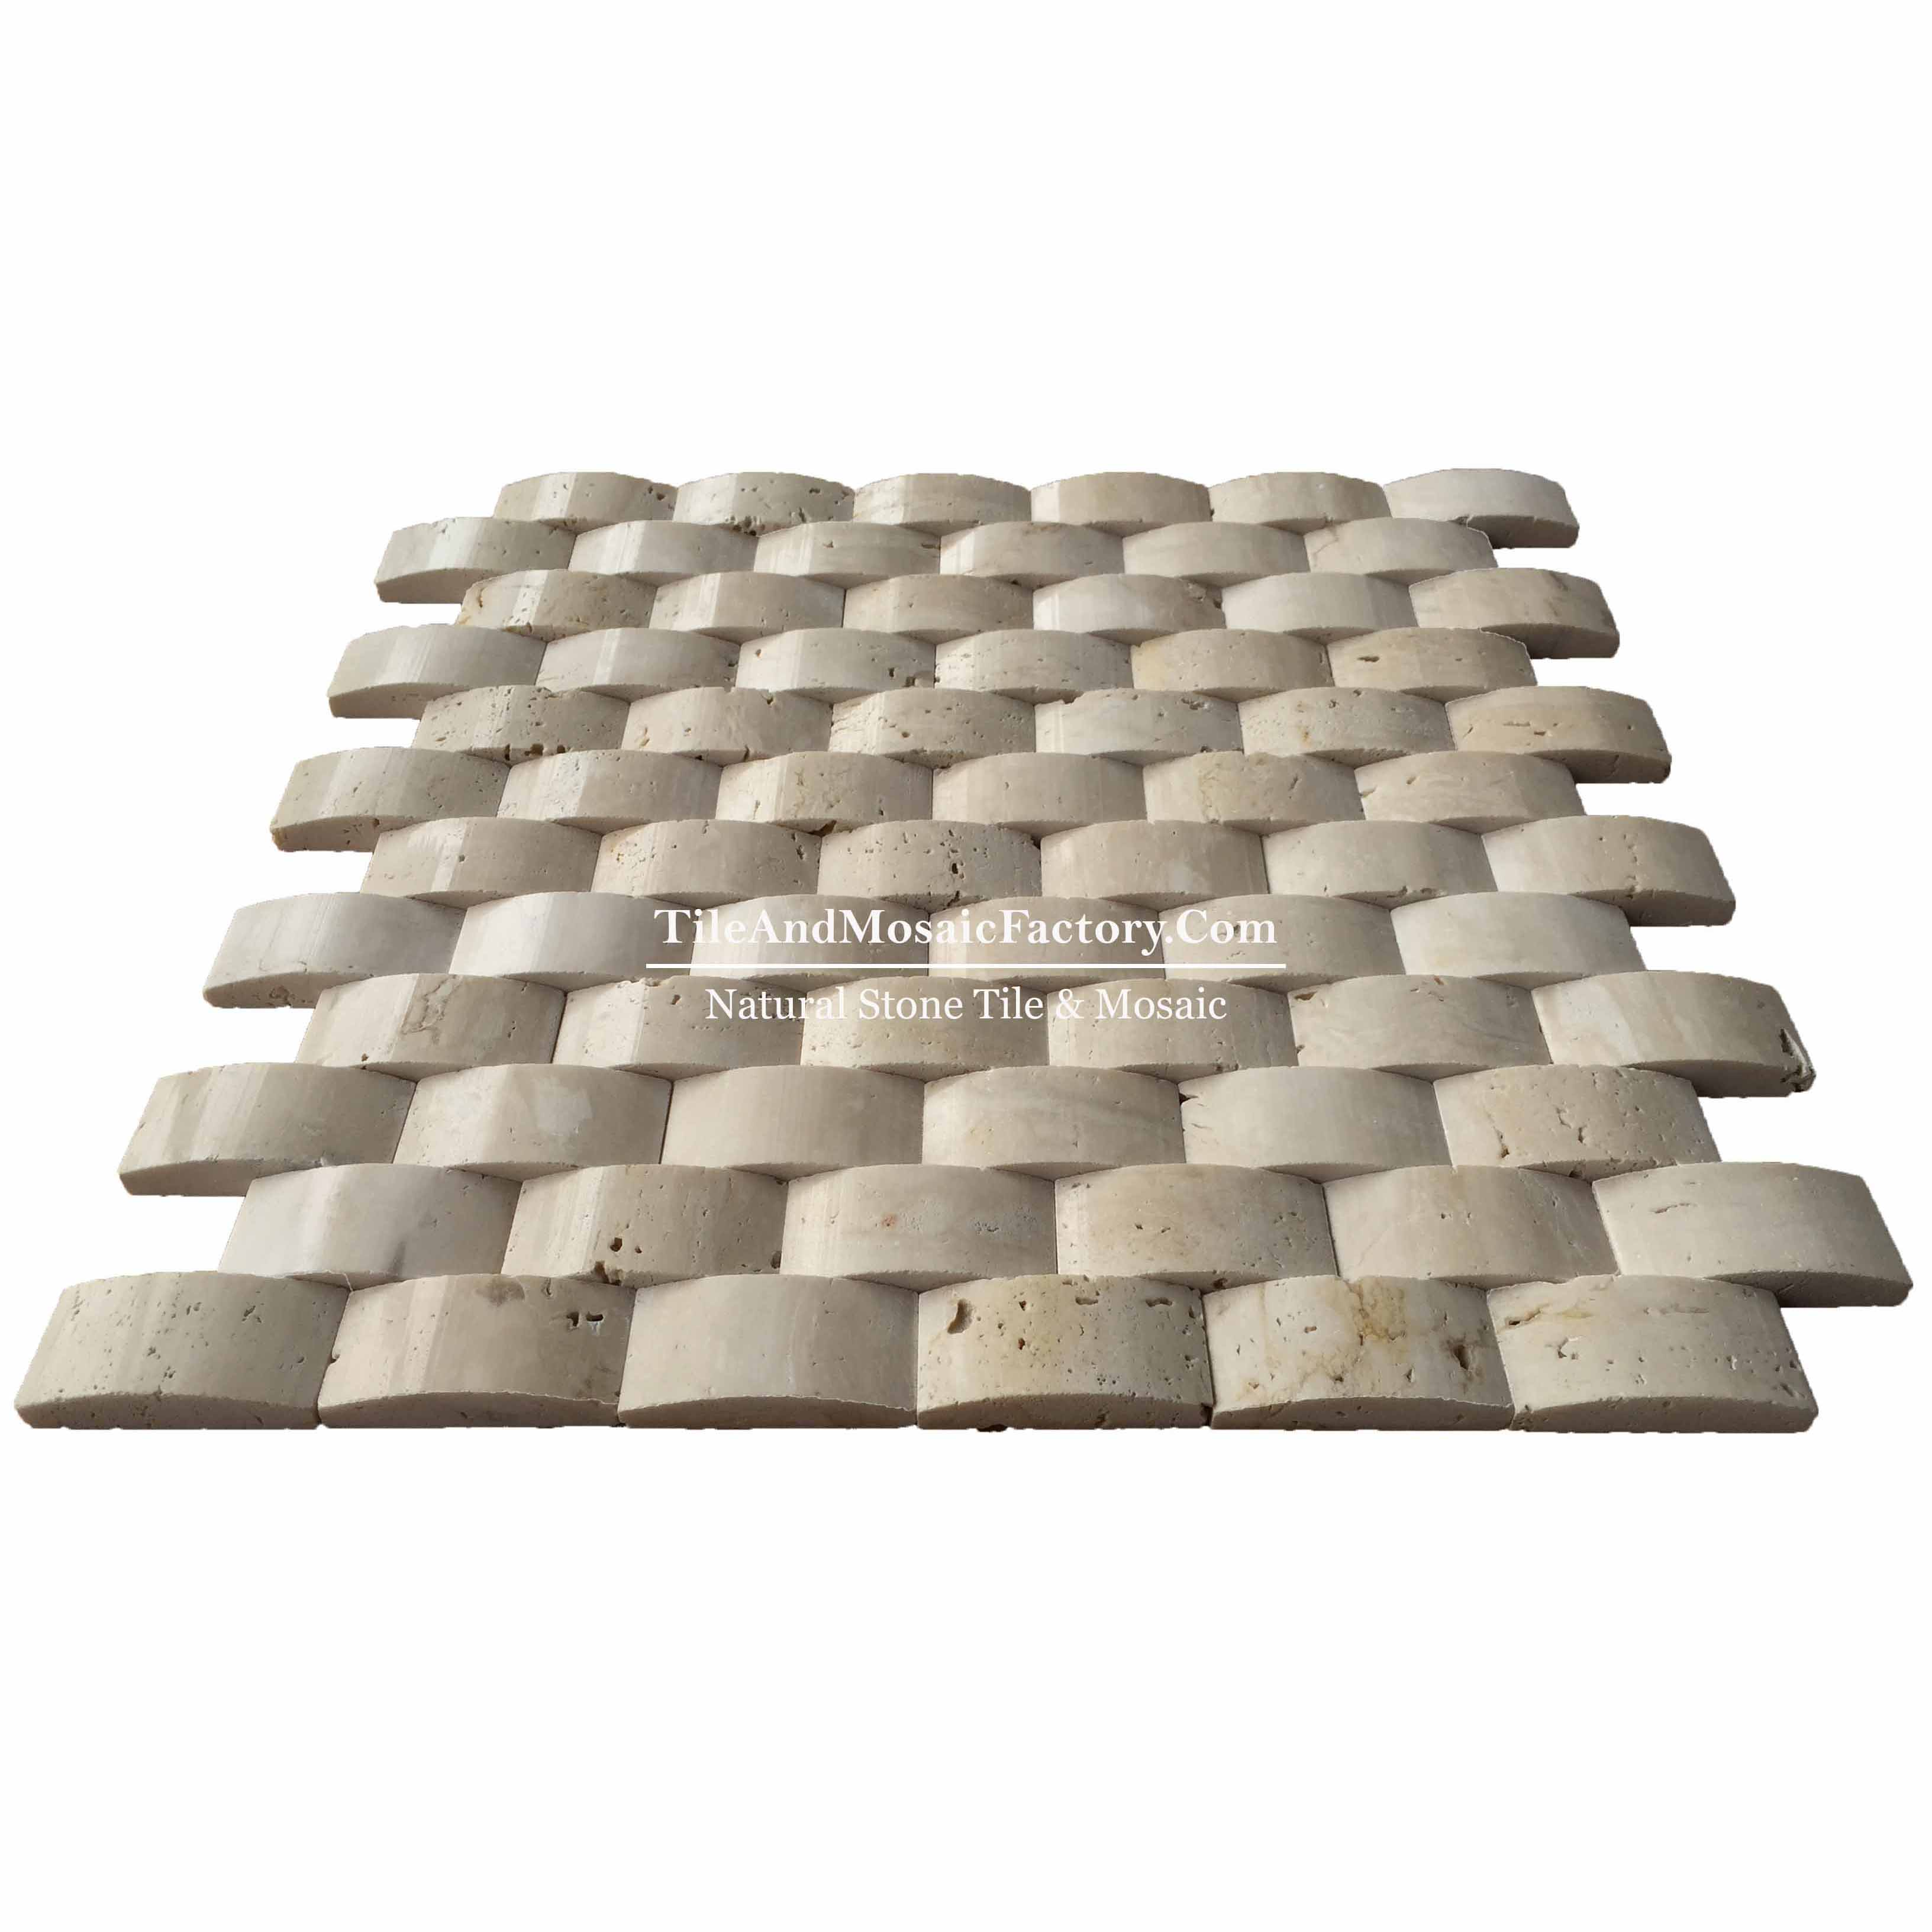 Light Travertine  Brick  1x2 Pillowed polished Beige color Marble Mosaic